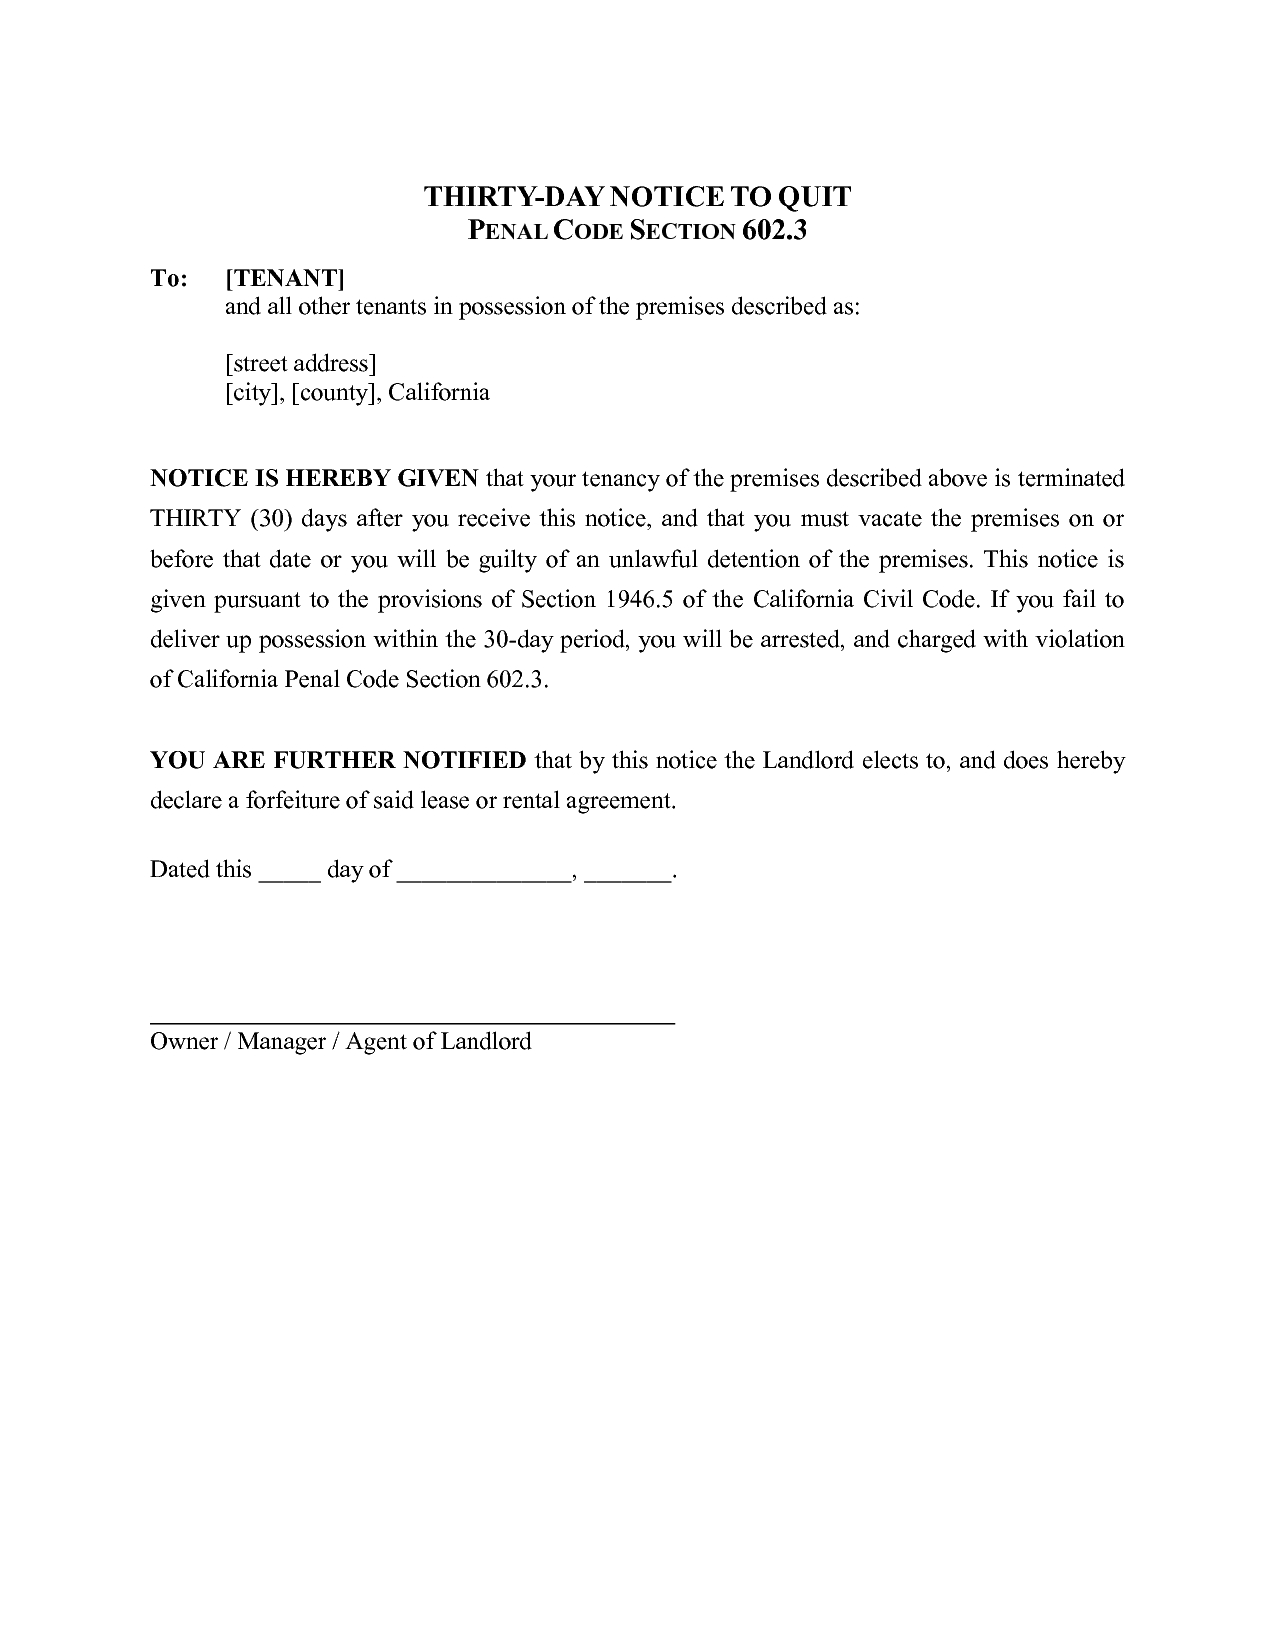 Eviction Letter Template California - 30 Day Notice Template California